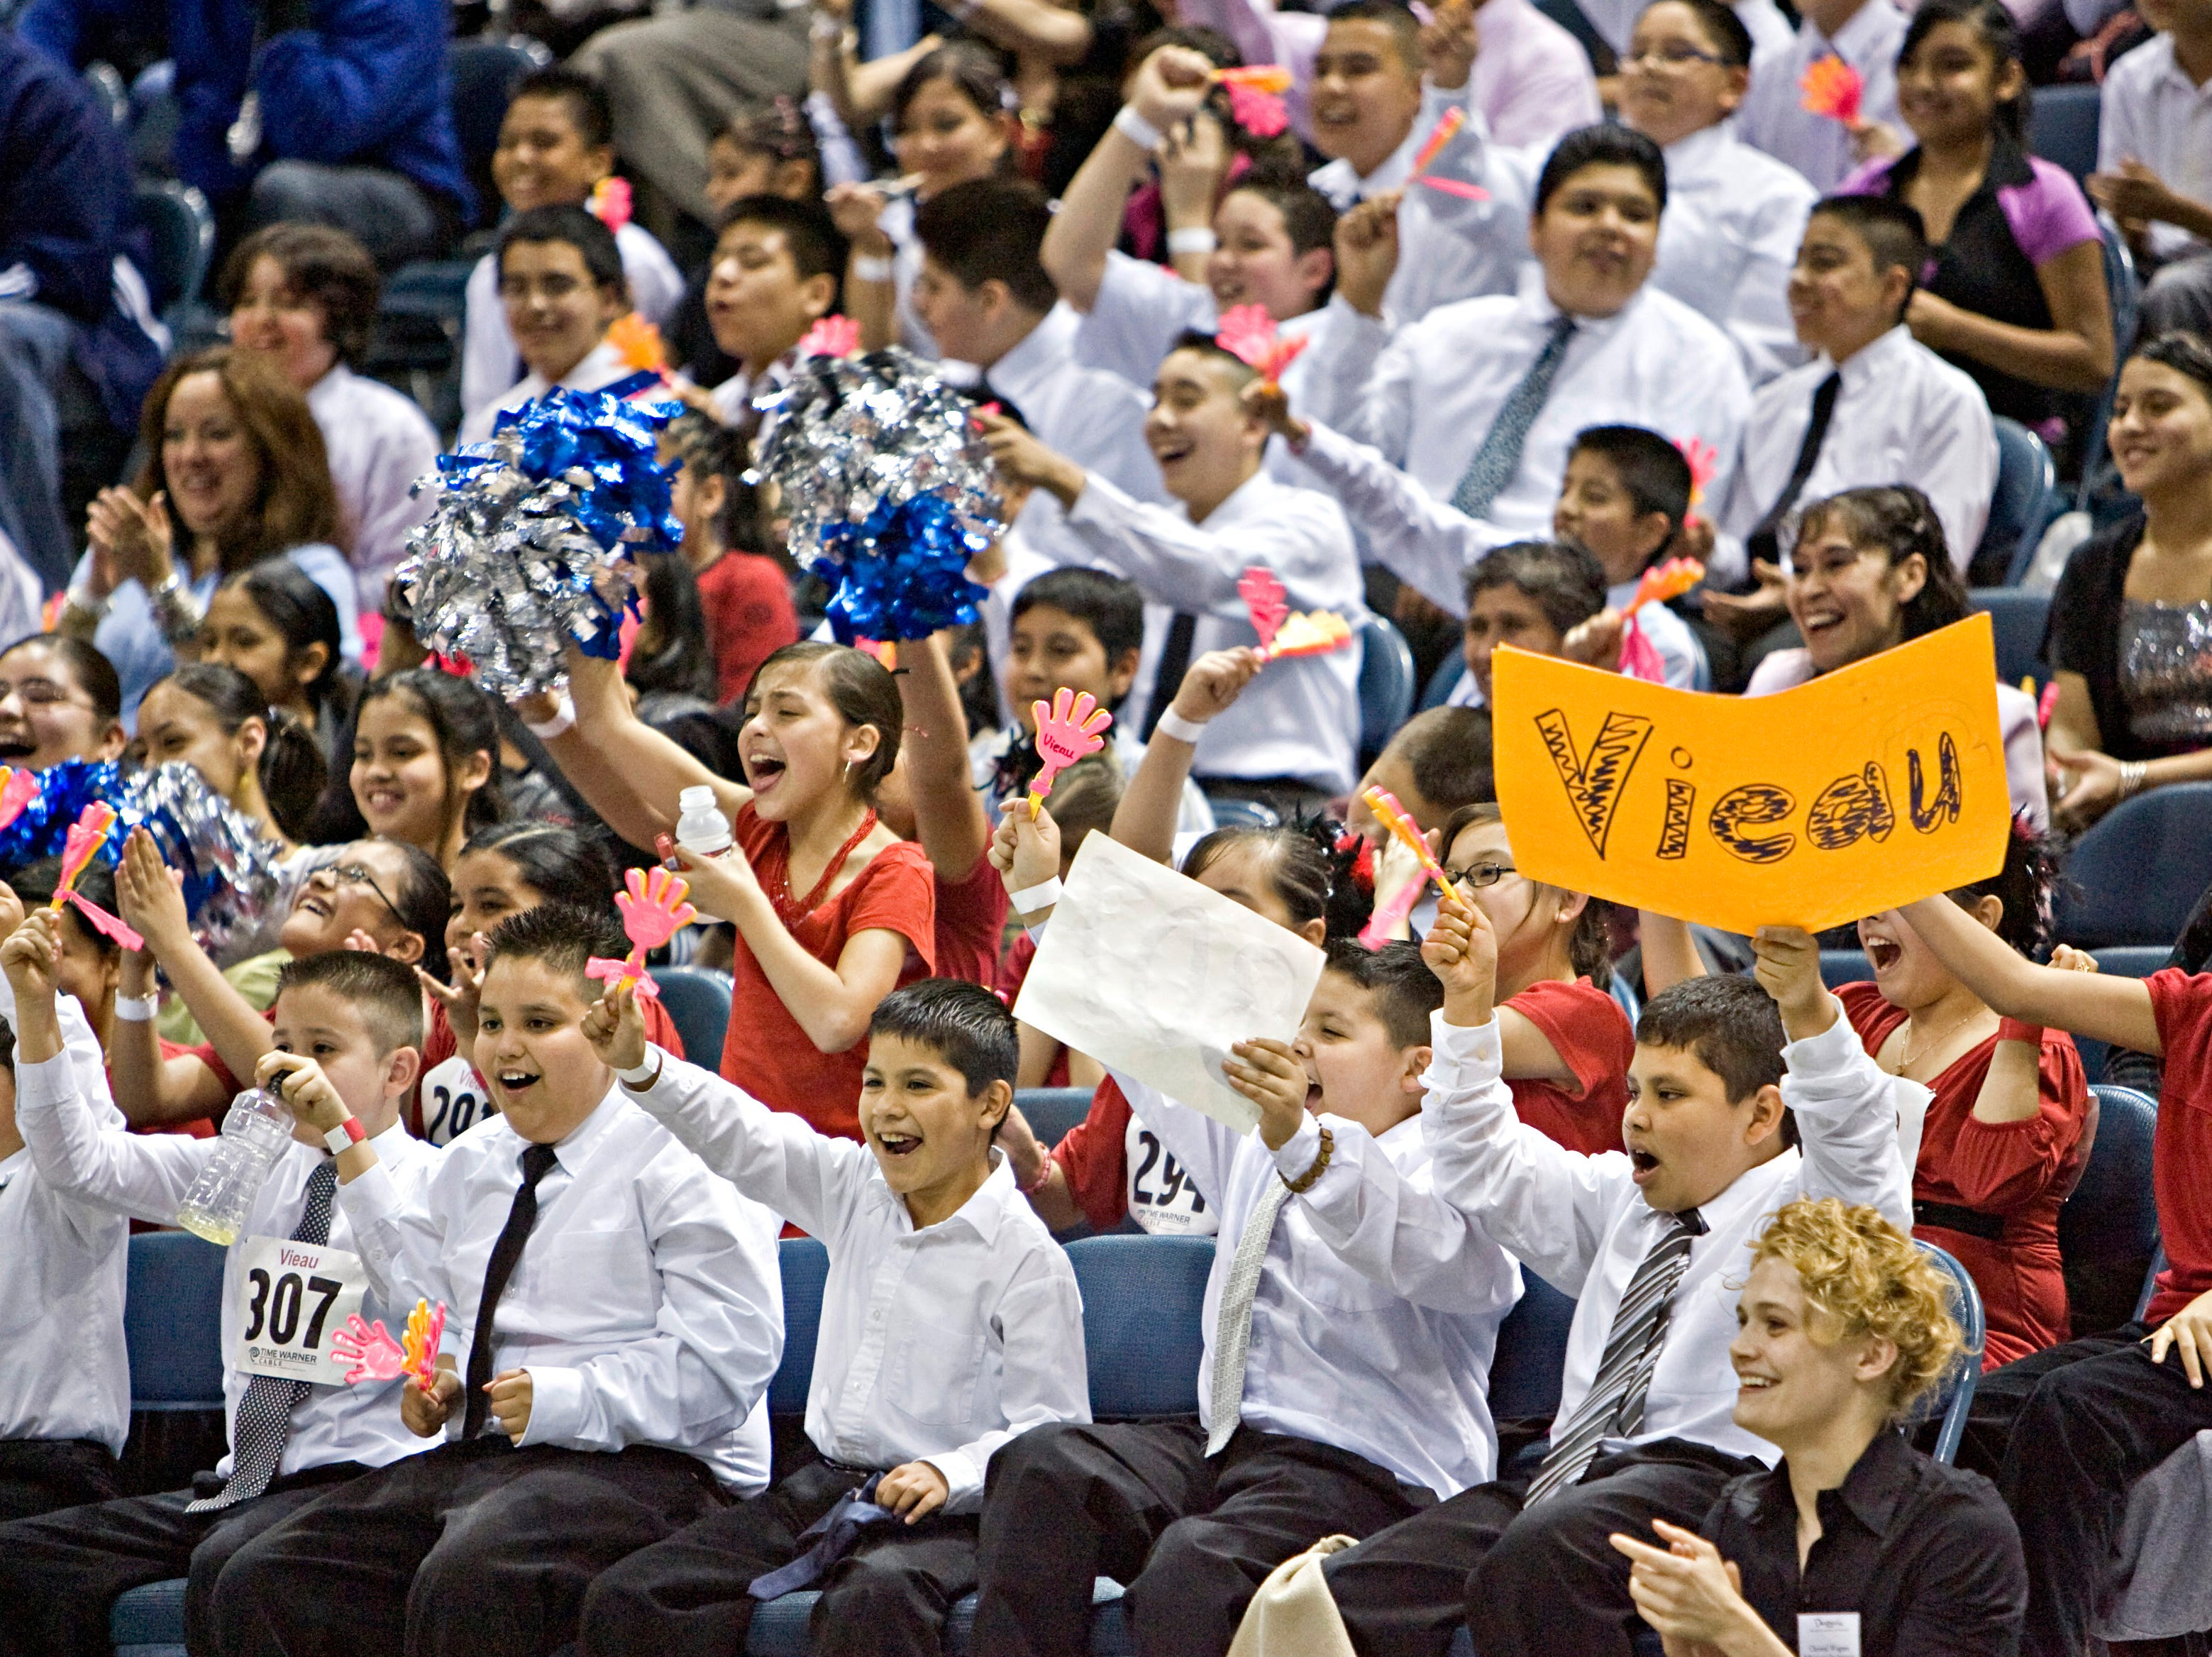 2008: Students from Vieau School cheer on their fellow dancers during the 2nd Annual Mad Hot Ballroom & Tap Competition at the Bradley Center.